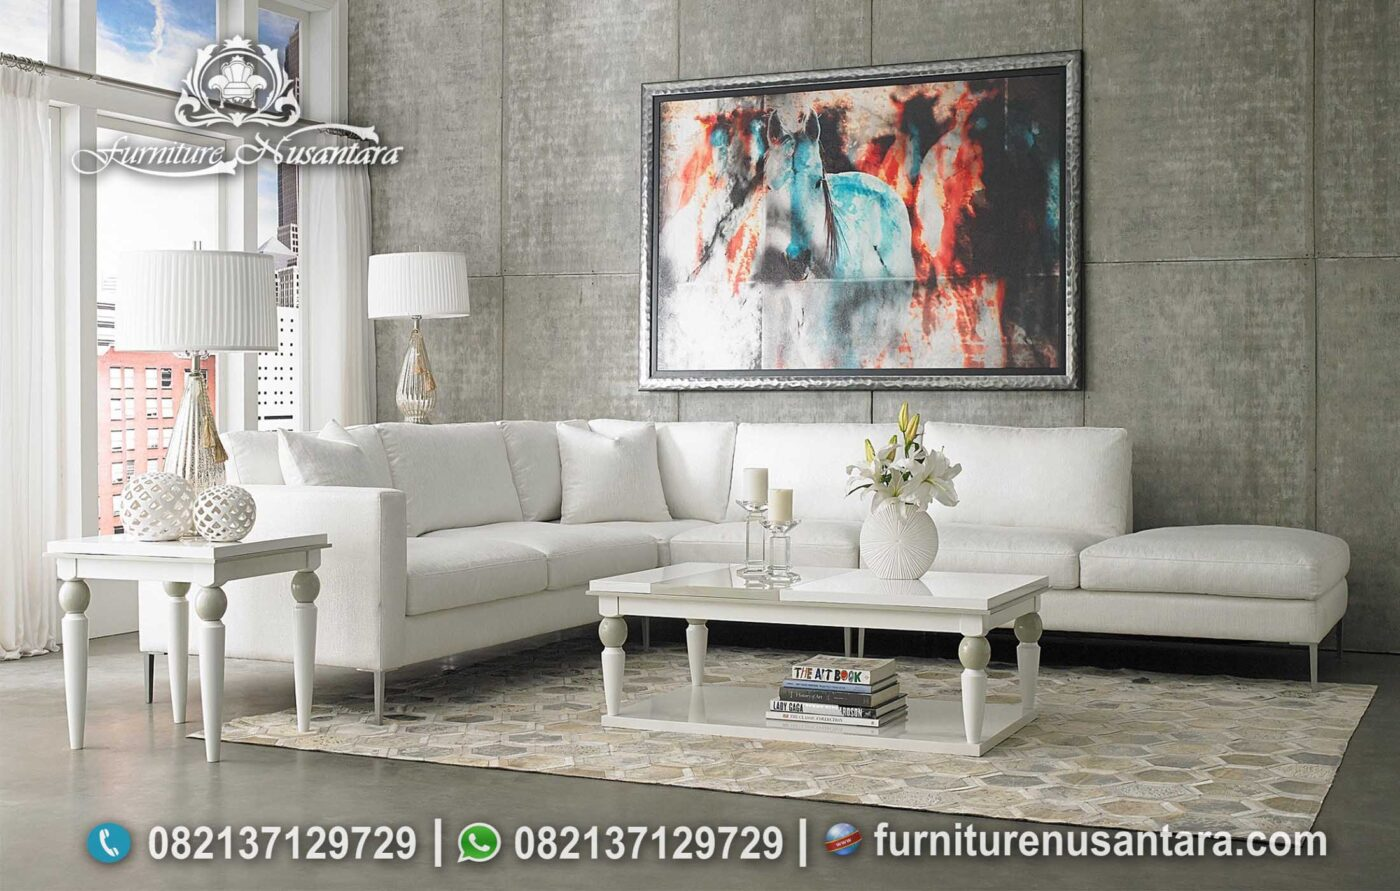 New Model Sofa L Modern Putih Terbaik ST-82, Furniture Nusantara